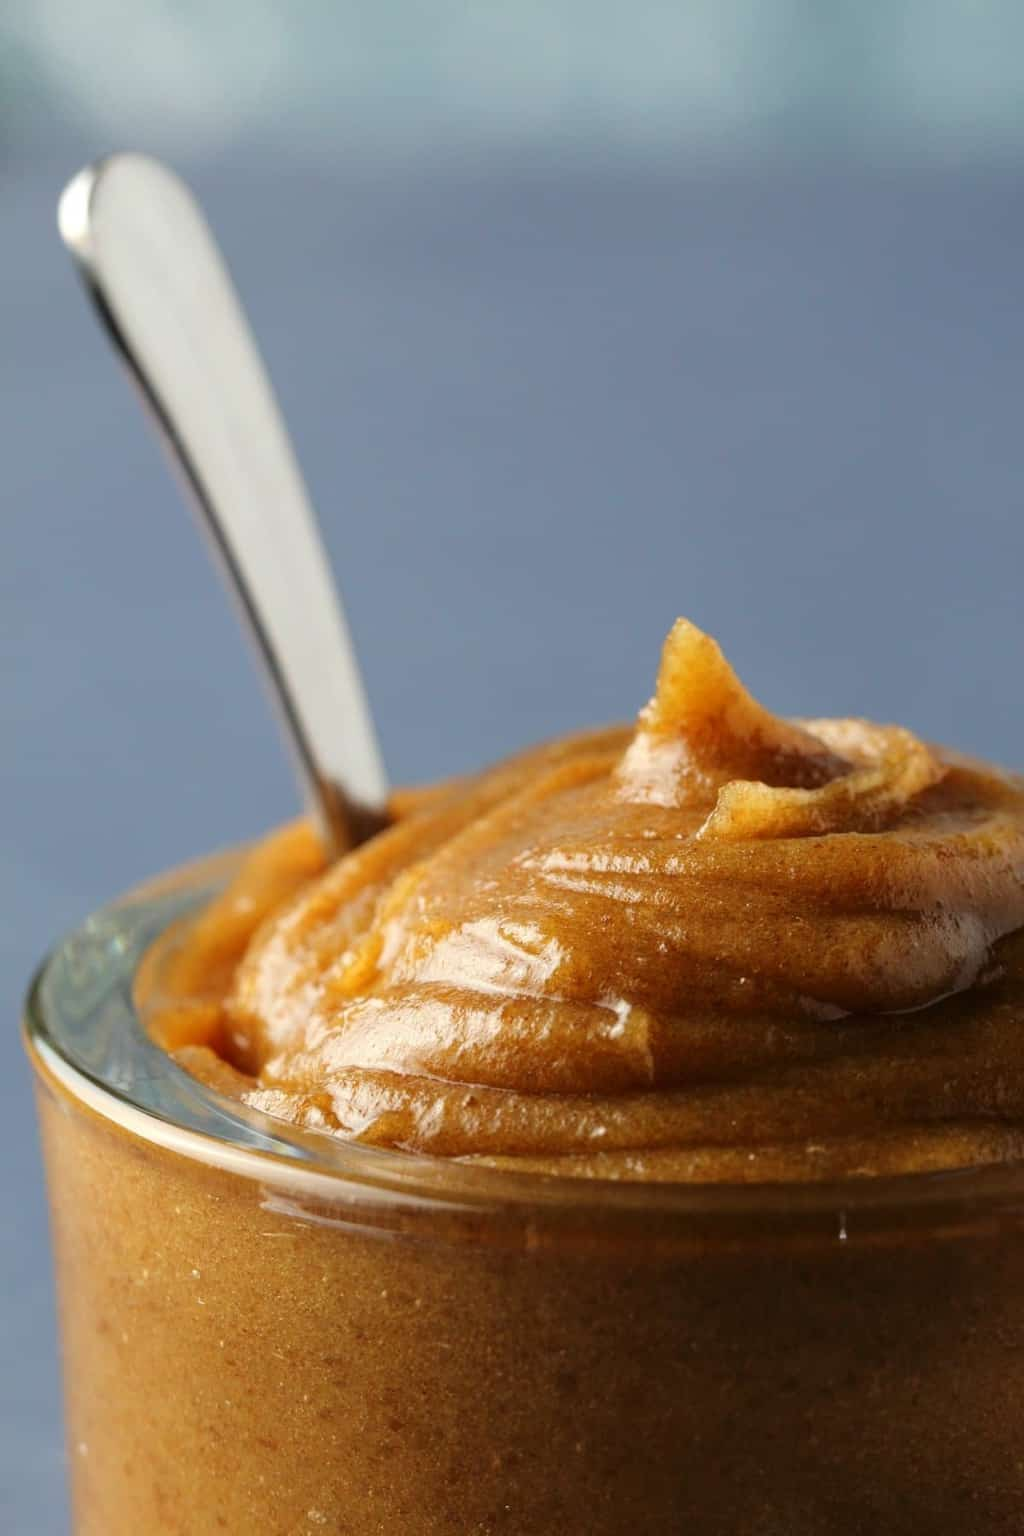 Date caramel in a glass jar with a spoon.